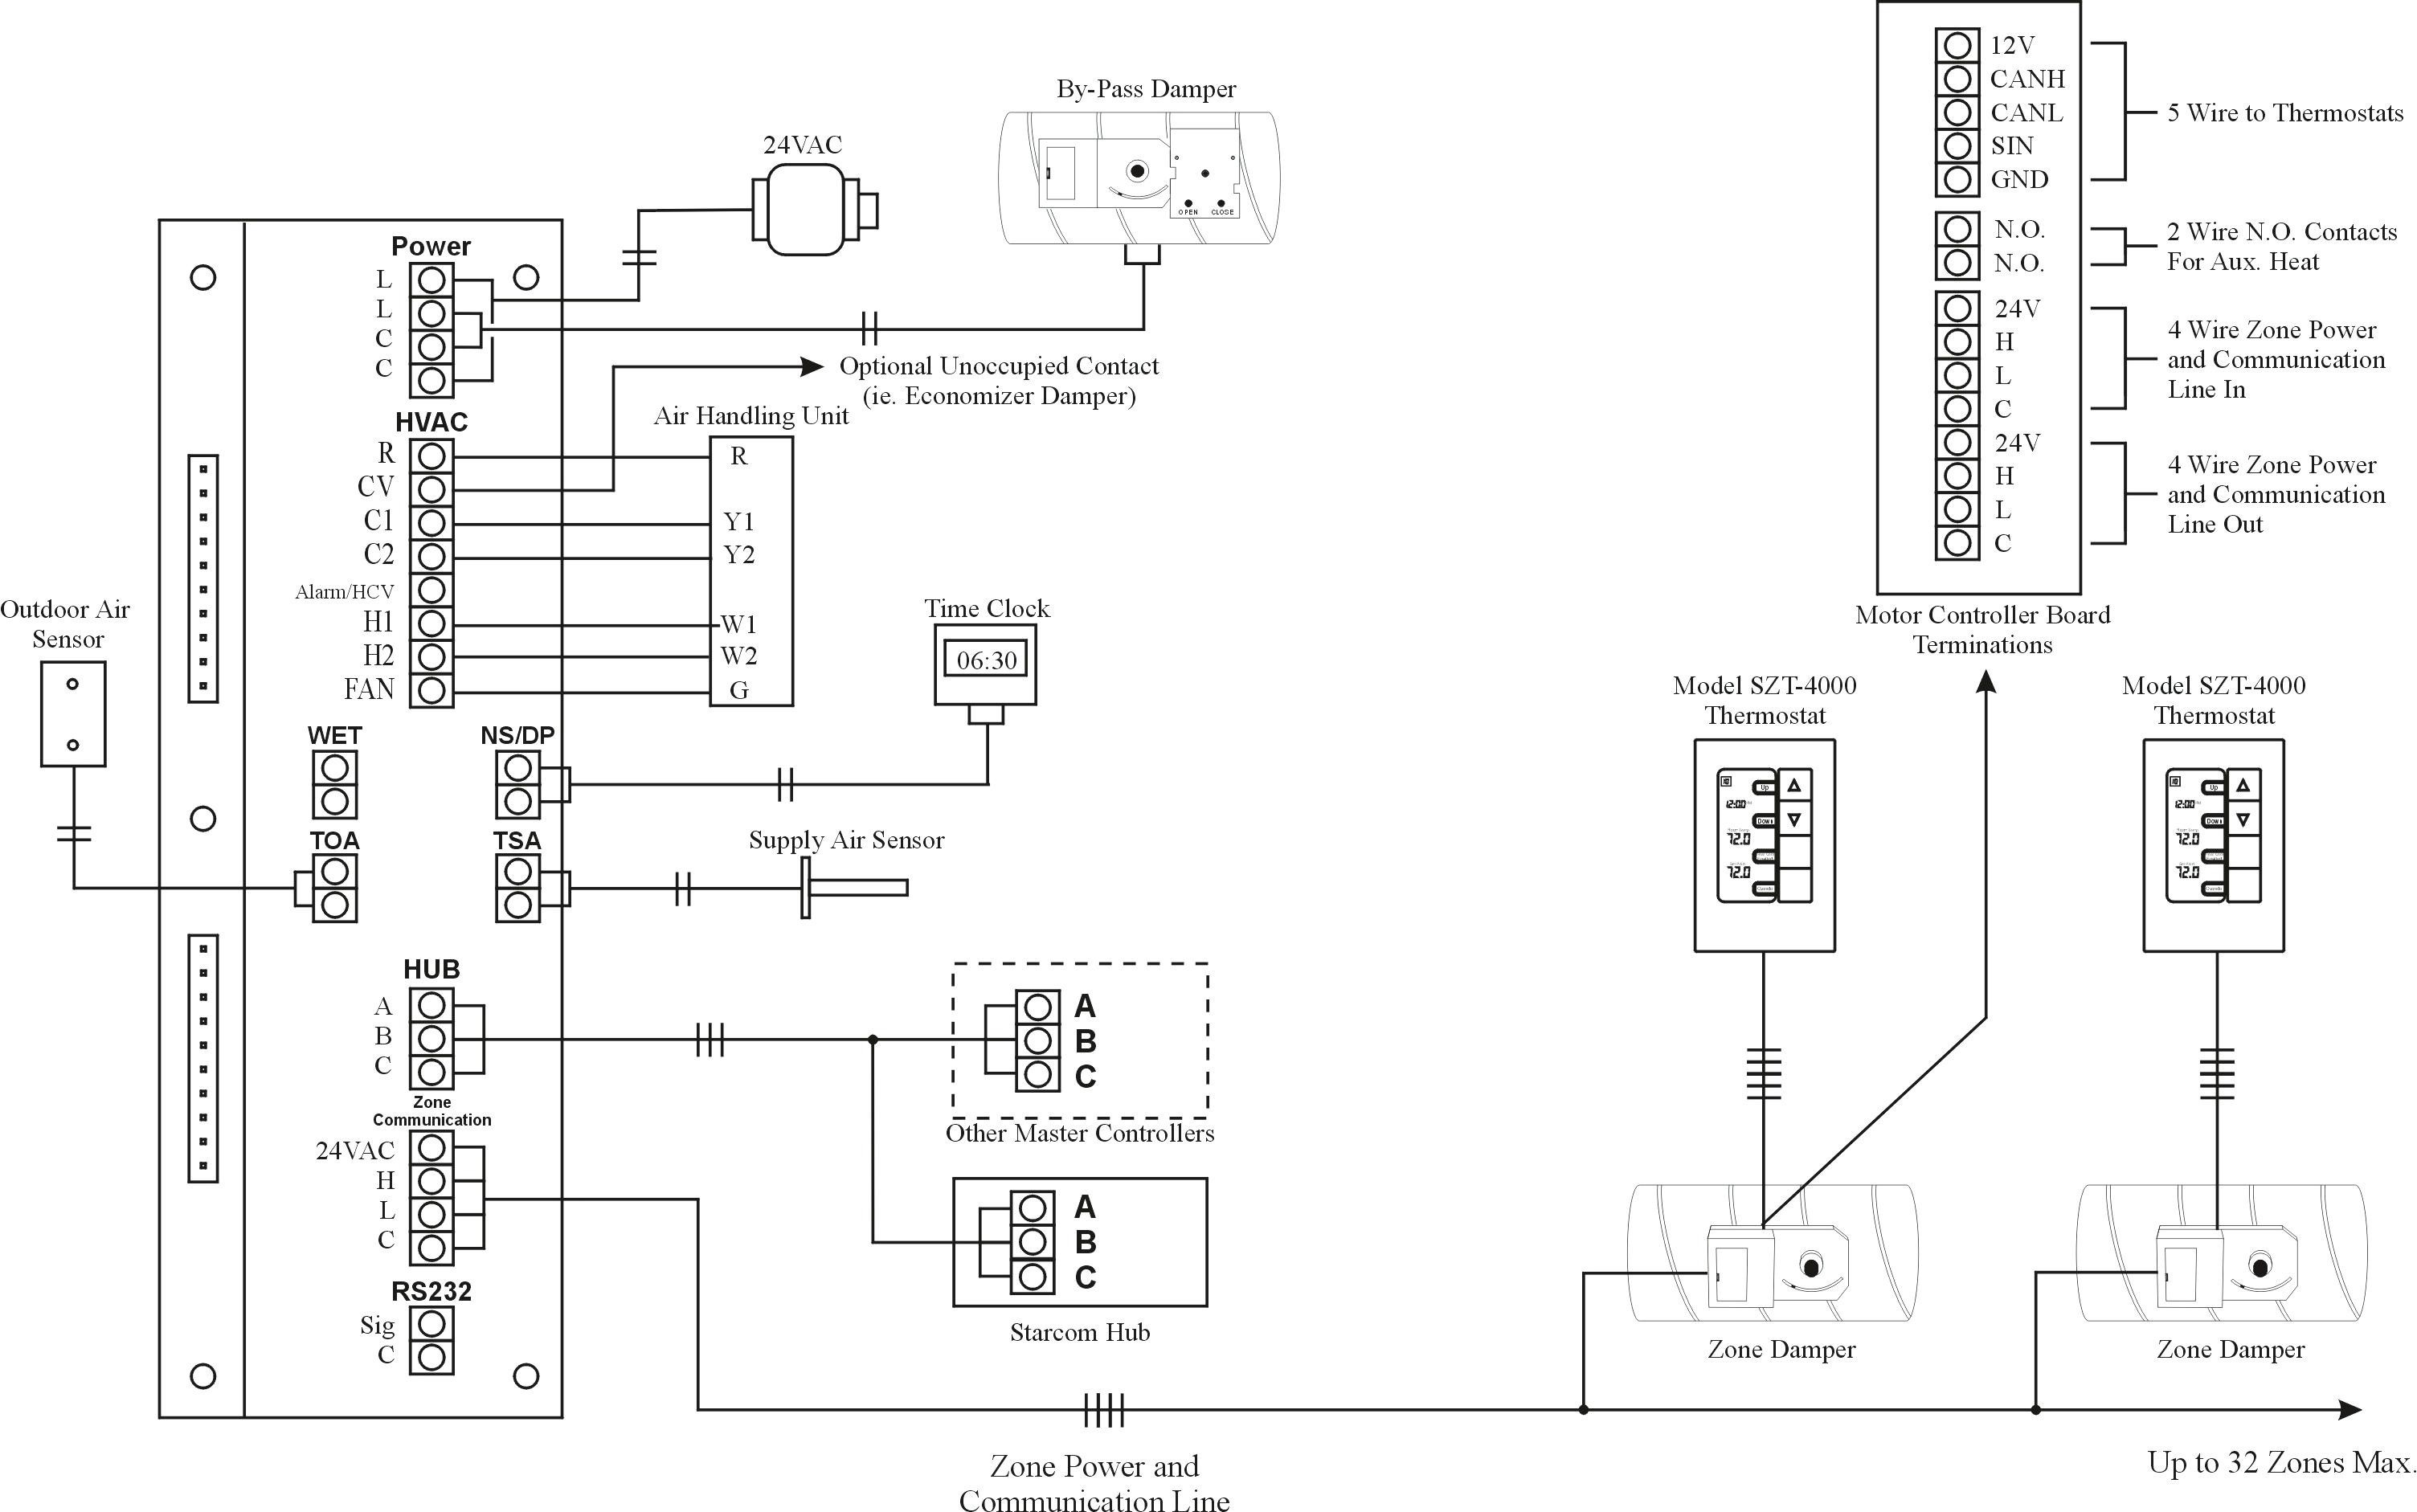 Goodman Heat Pump Wiring Diagram Goodman Air Handler Wiring Diagram Techrush Of Goodman Heat Pump Wiring Diagram Goodman Air Handler Wiring Diagram New Electric Heat Wiring Diagram